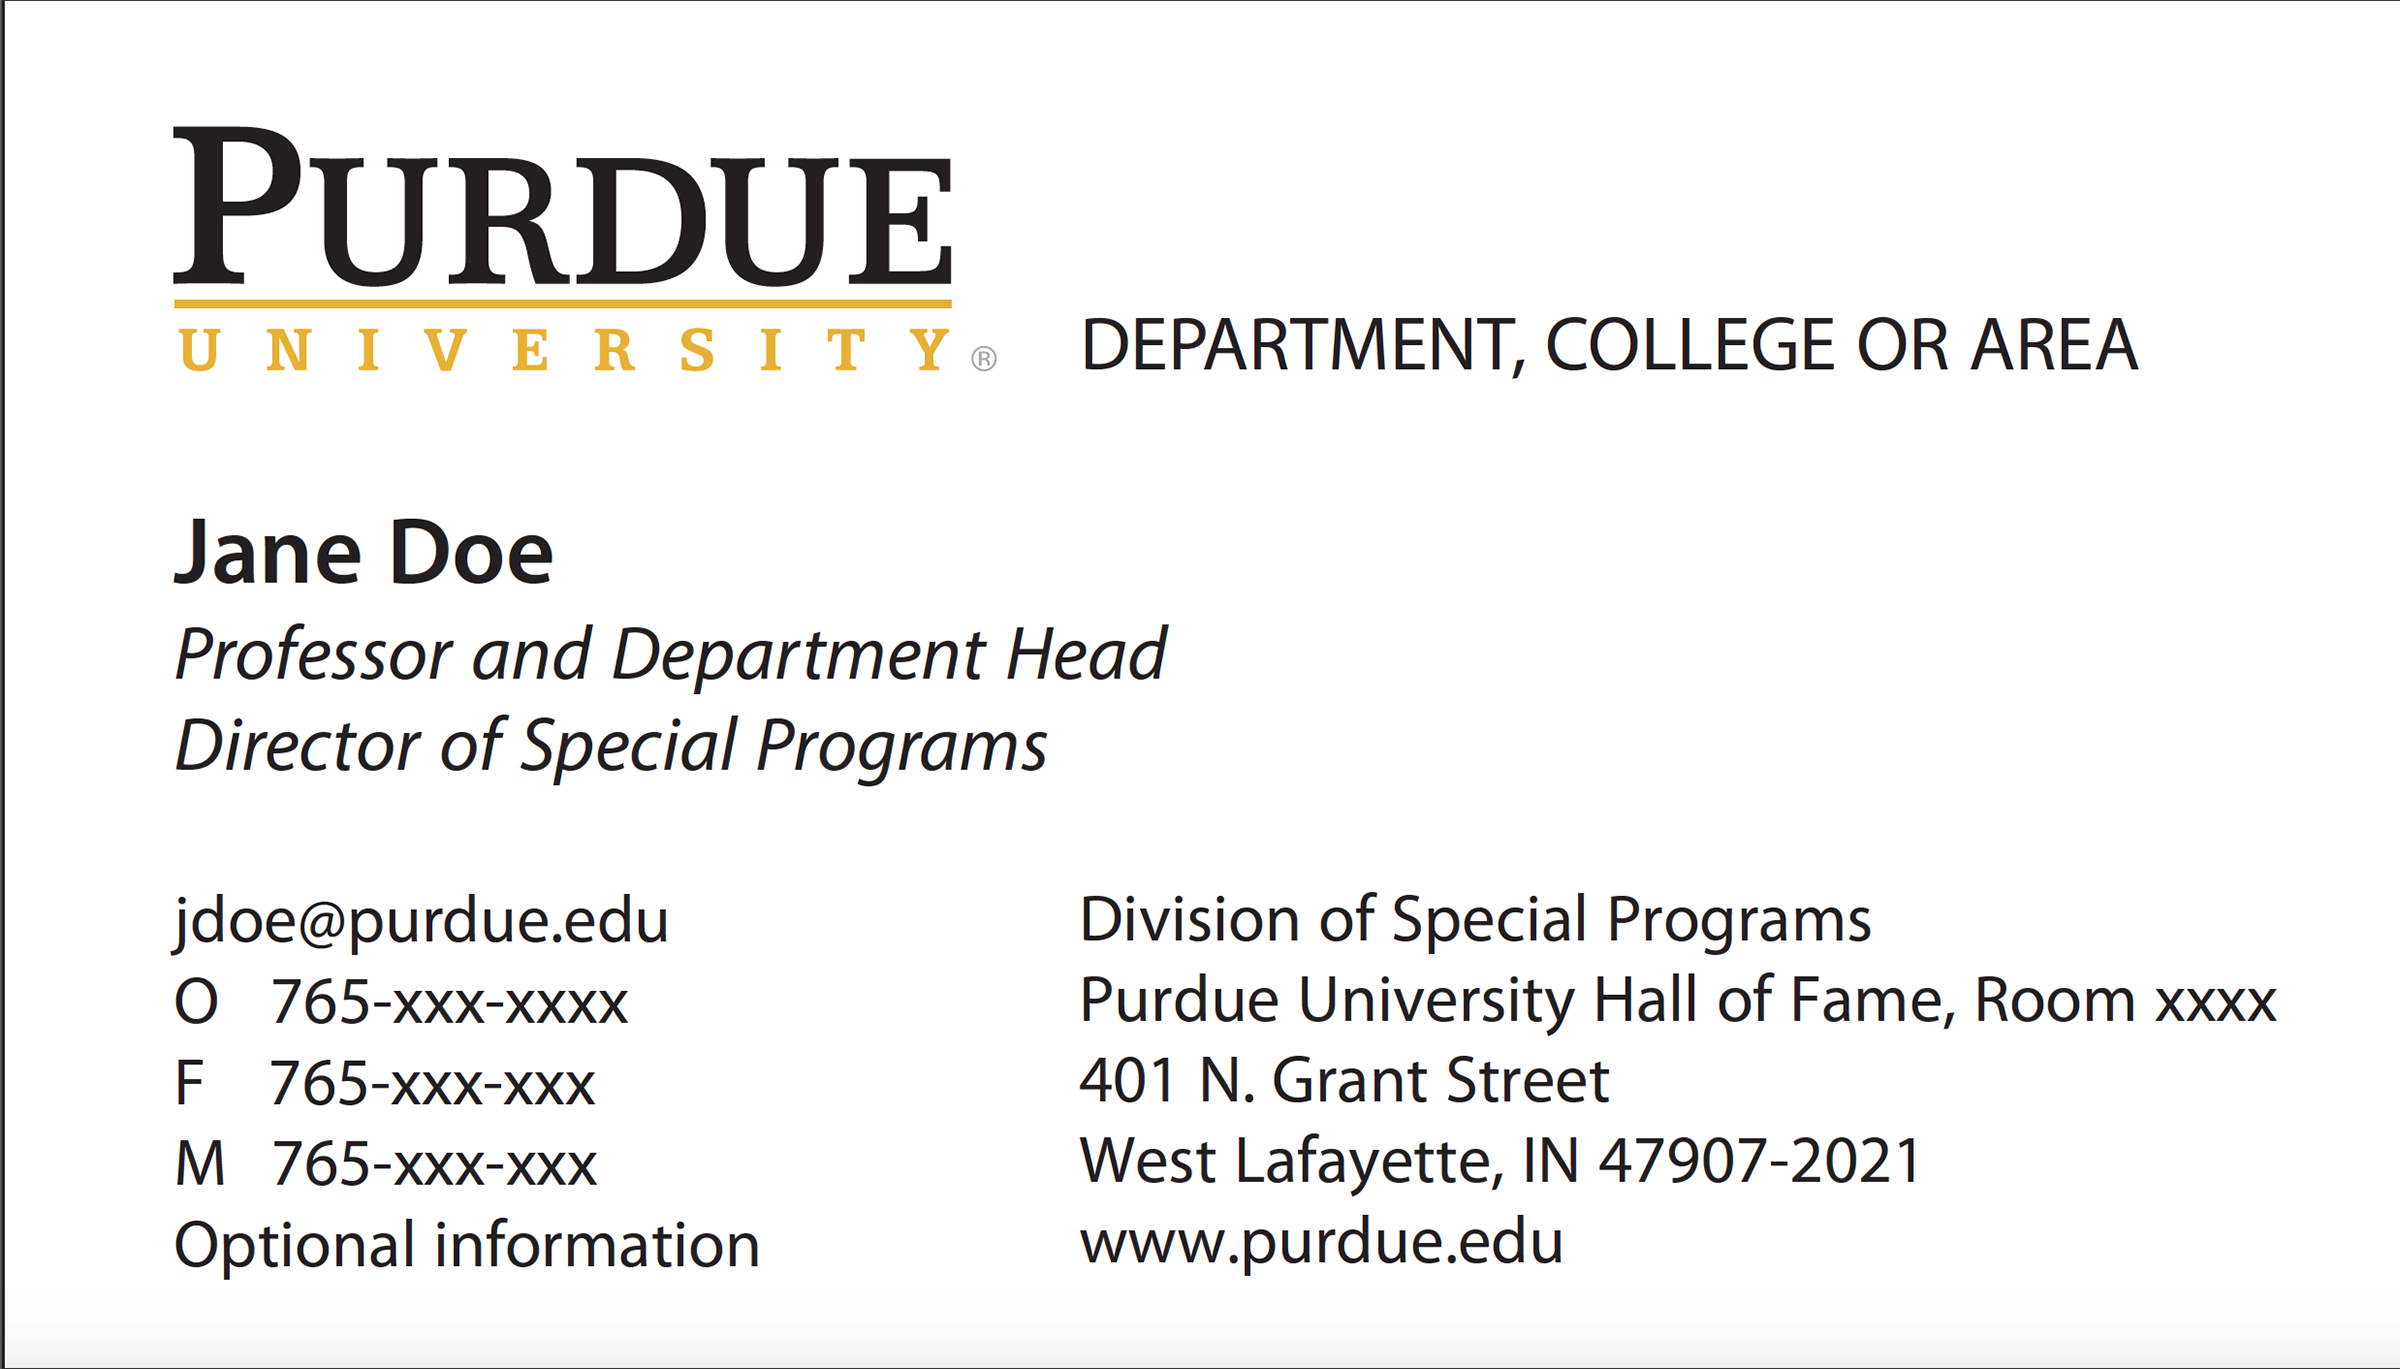 New Business Card Template Now Online Purdue University News